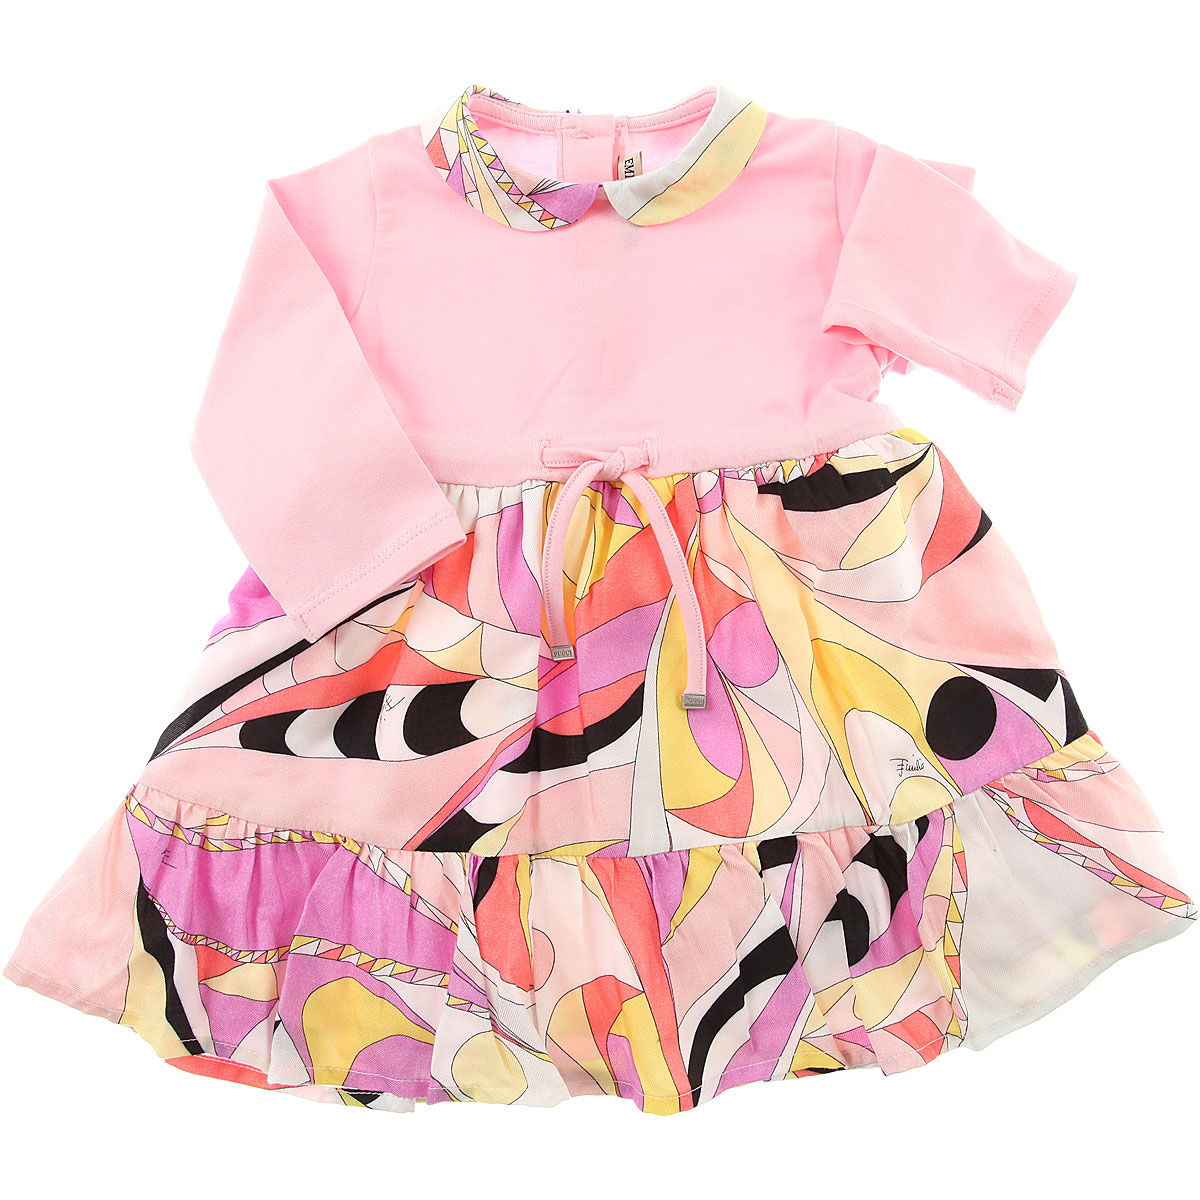 Image of Emilio Pucci Baby Dress for Girls, Pink, Cotton, 2017, 12M 18M 2Y 6M 9M